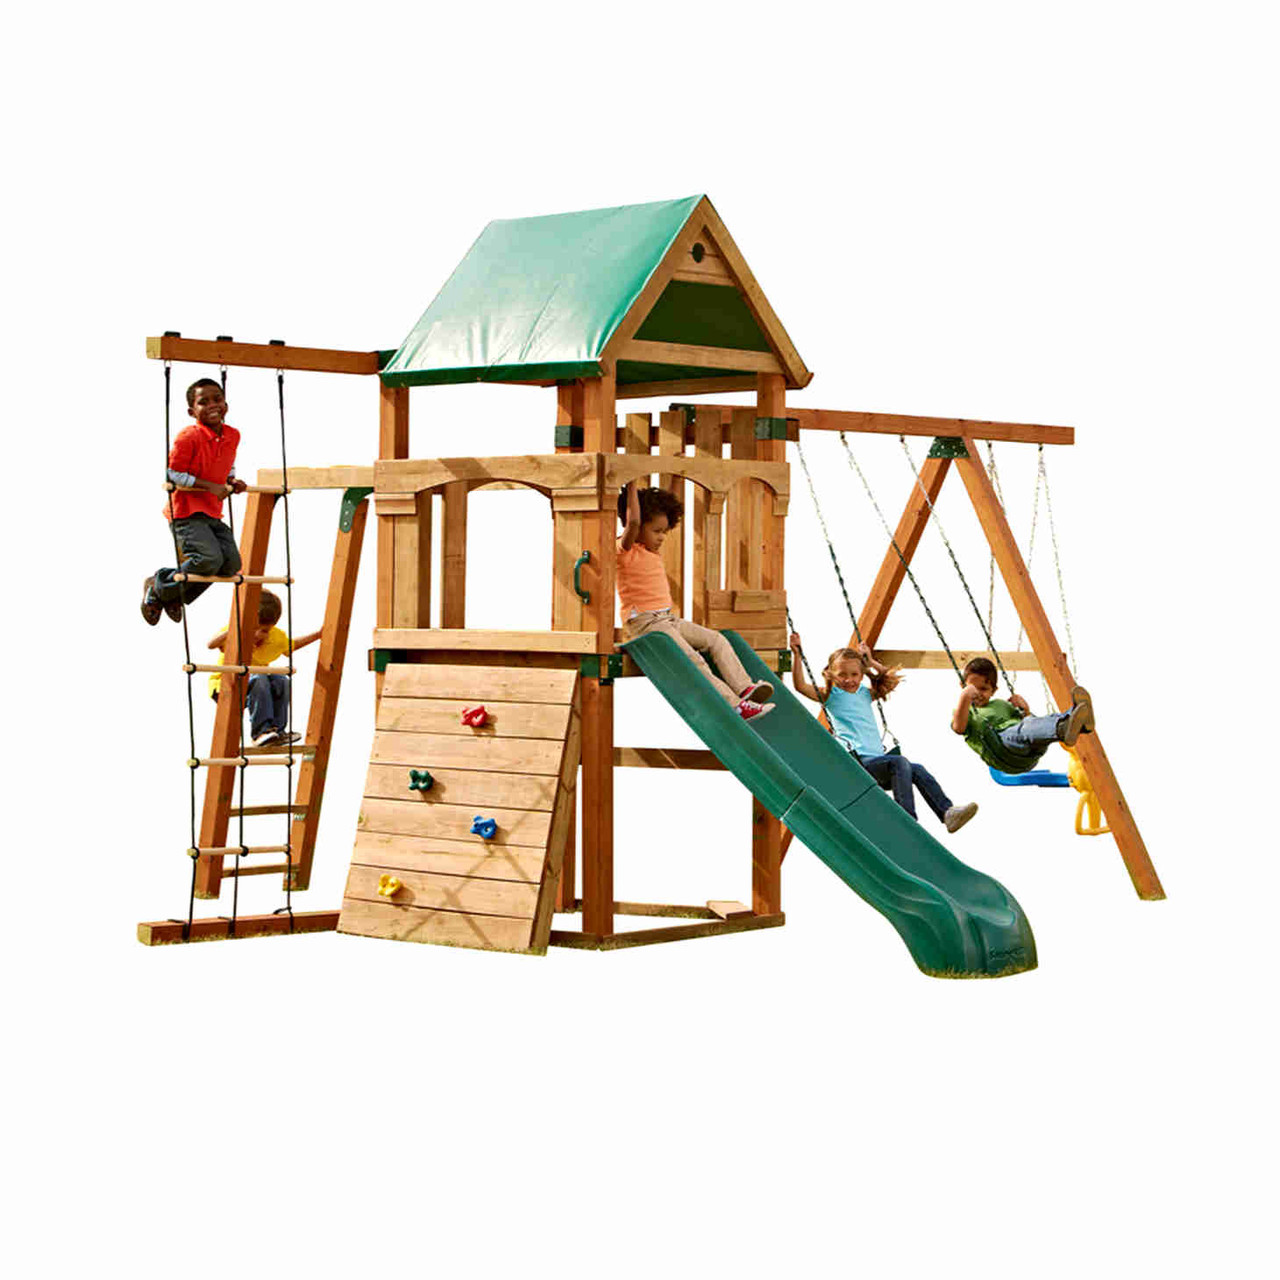 Trekker Complete Swing Set (PB-8320) Children Playing